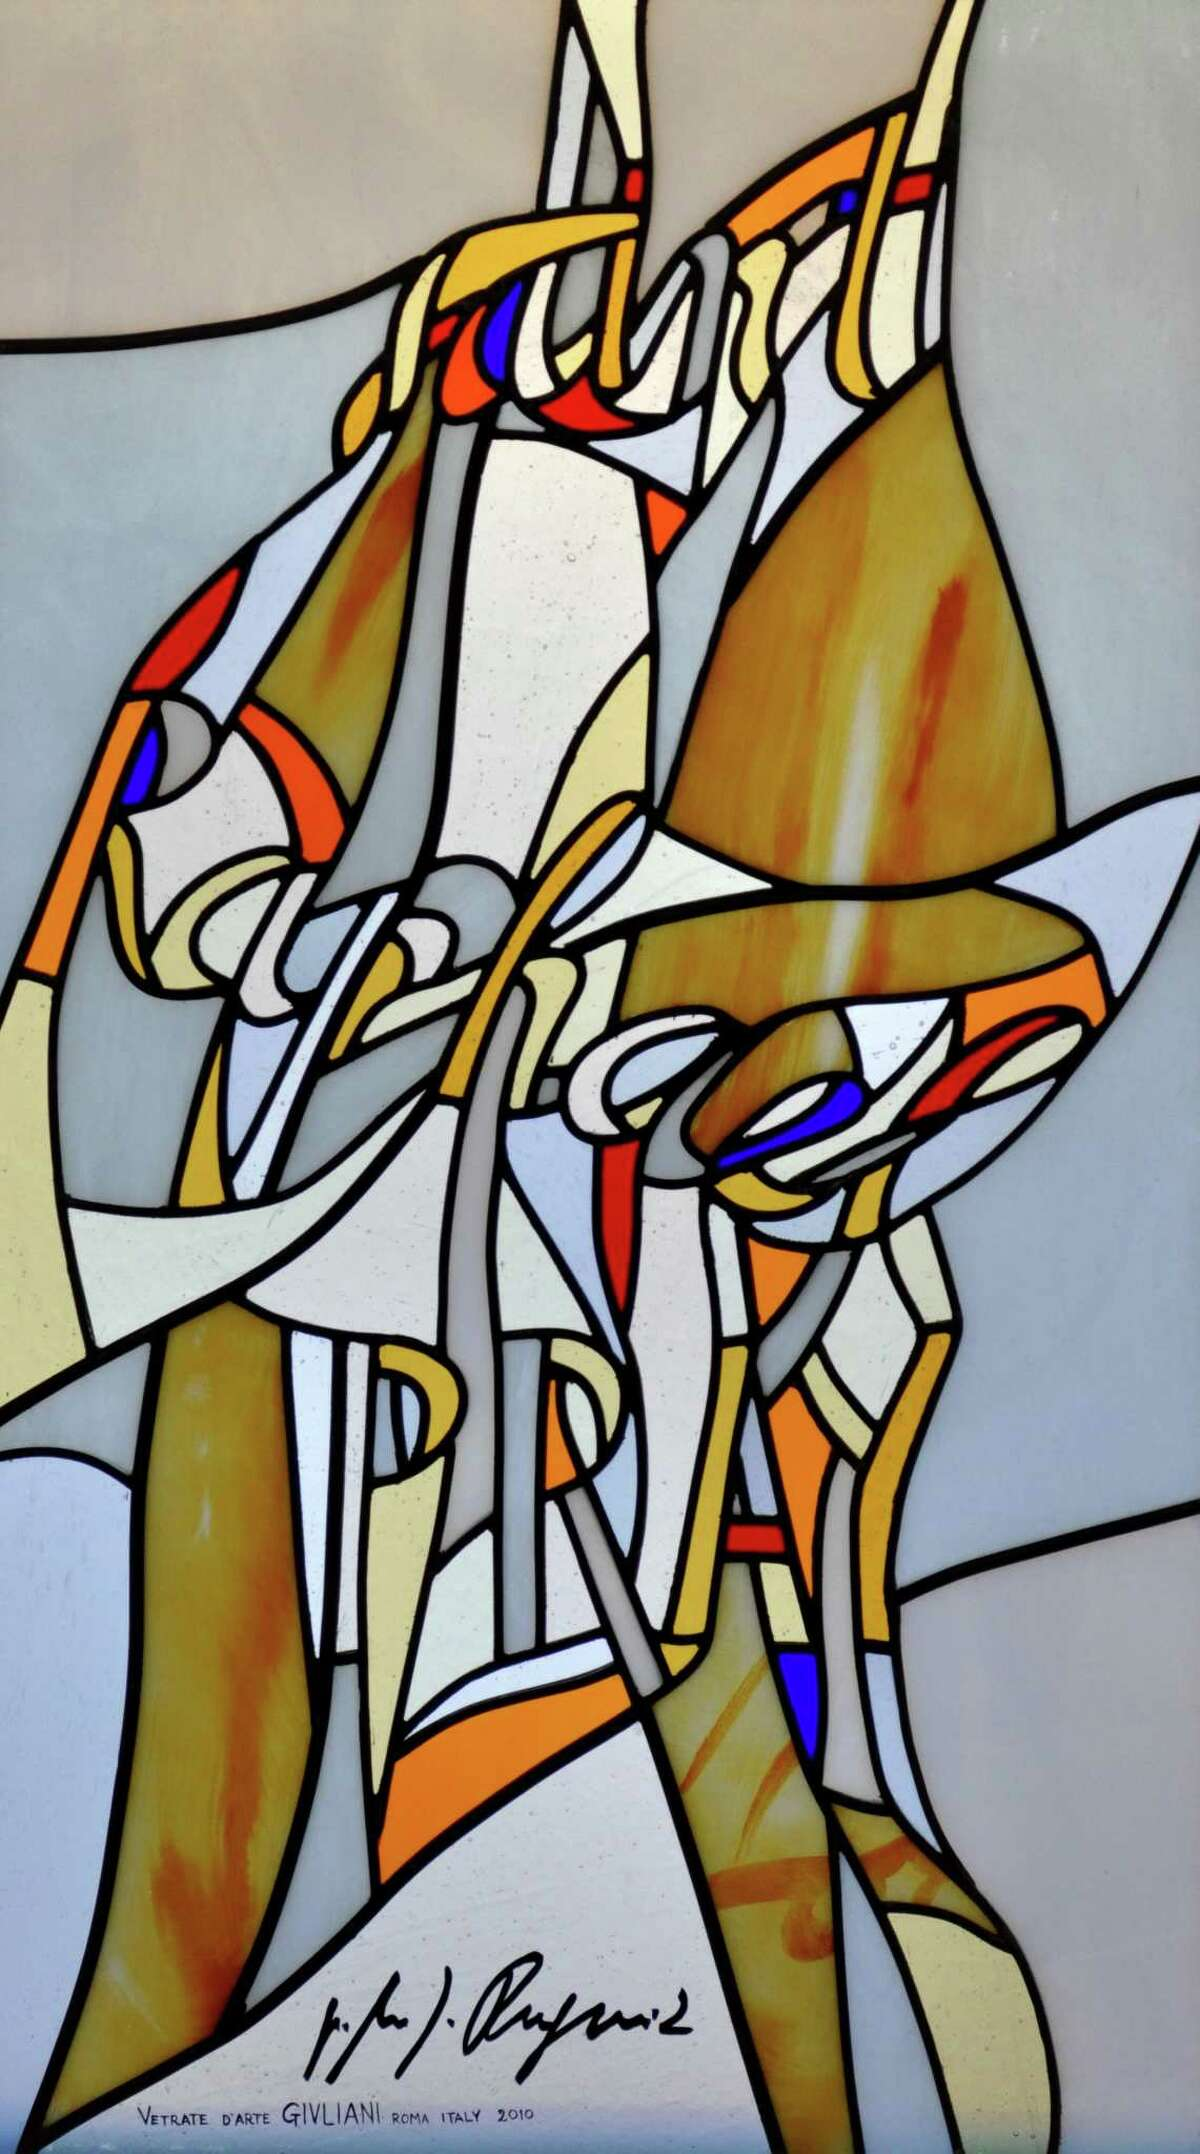 Each of the stained glass windows at the Chapel of the Holy Spirit, on the campus of Sacred Heart University in Fairfield, features a modernist design with splashes of color in which words (rather than images) are interwoven referencing the people and events in the story of salvation. This